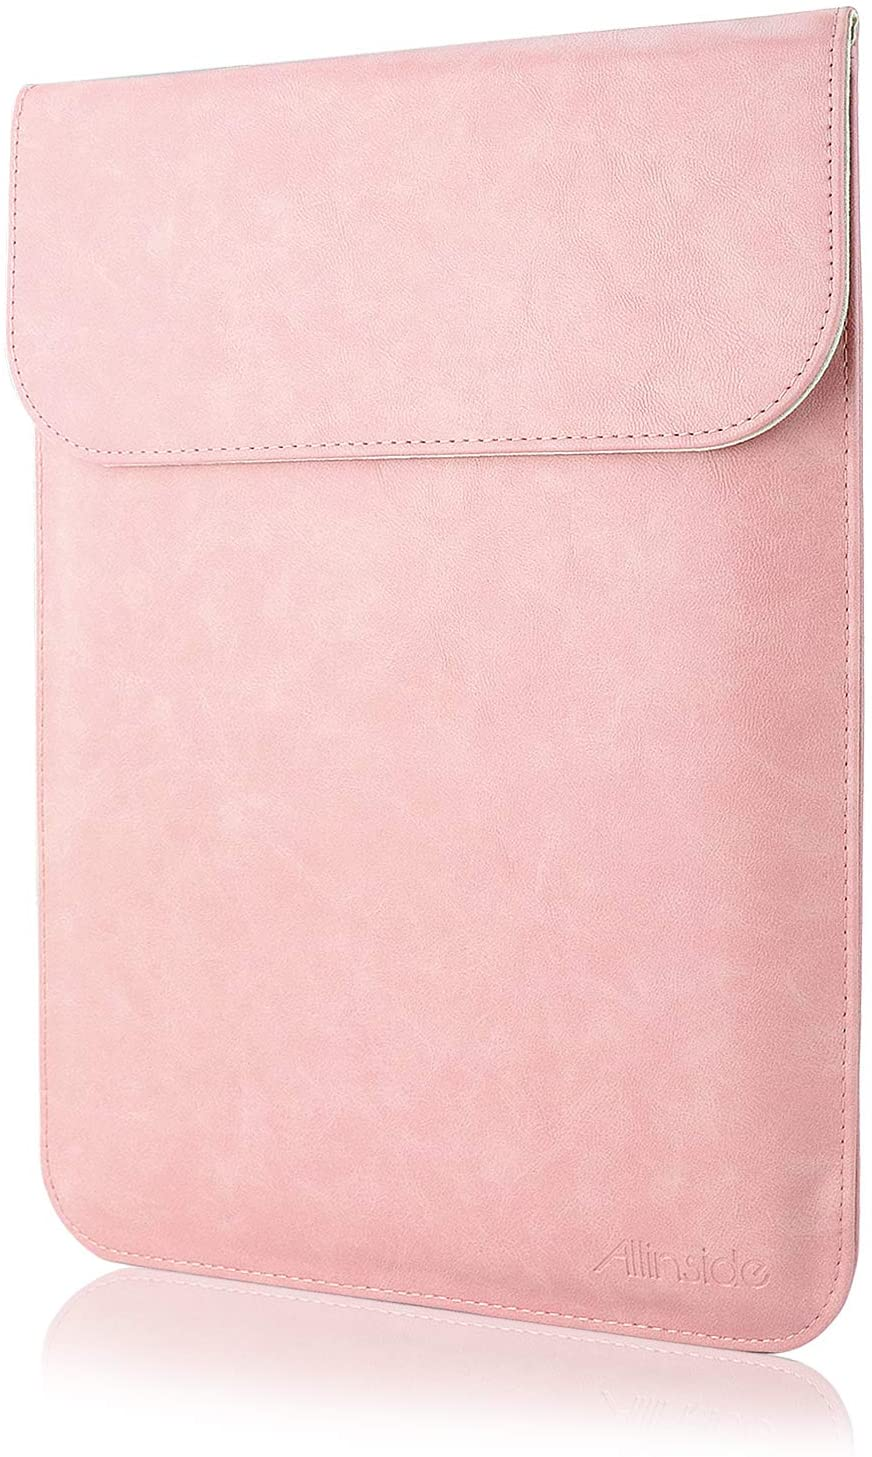 "Allinside 11-12"" Laptop Sleeve for MacBook Air 11 / MacBook 12, Synthetic Leather, Pink"